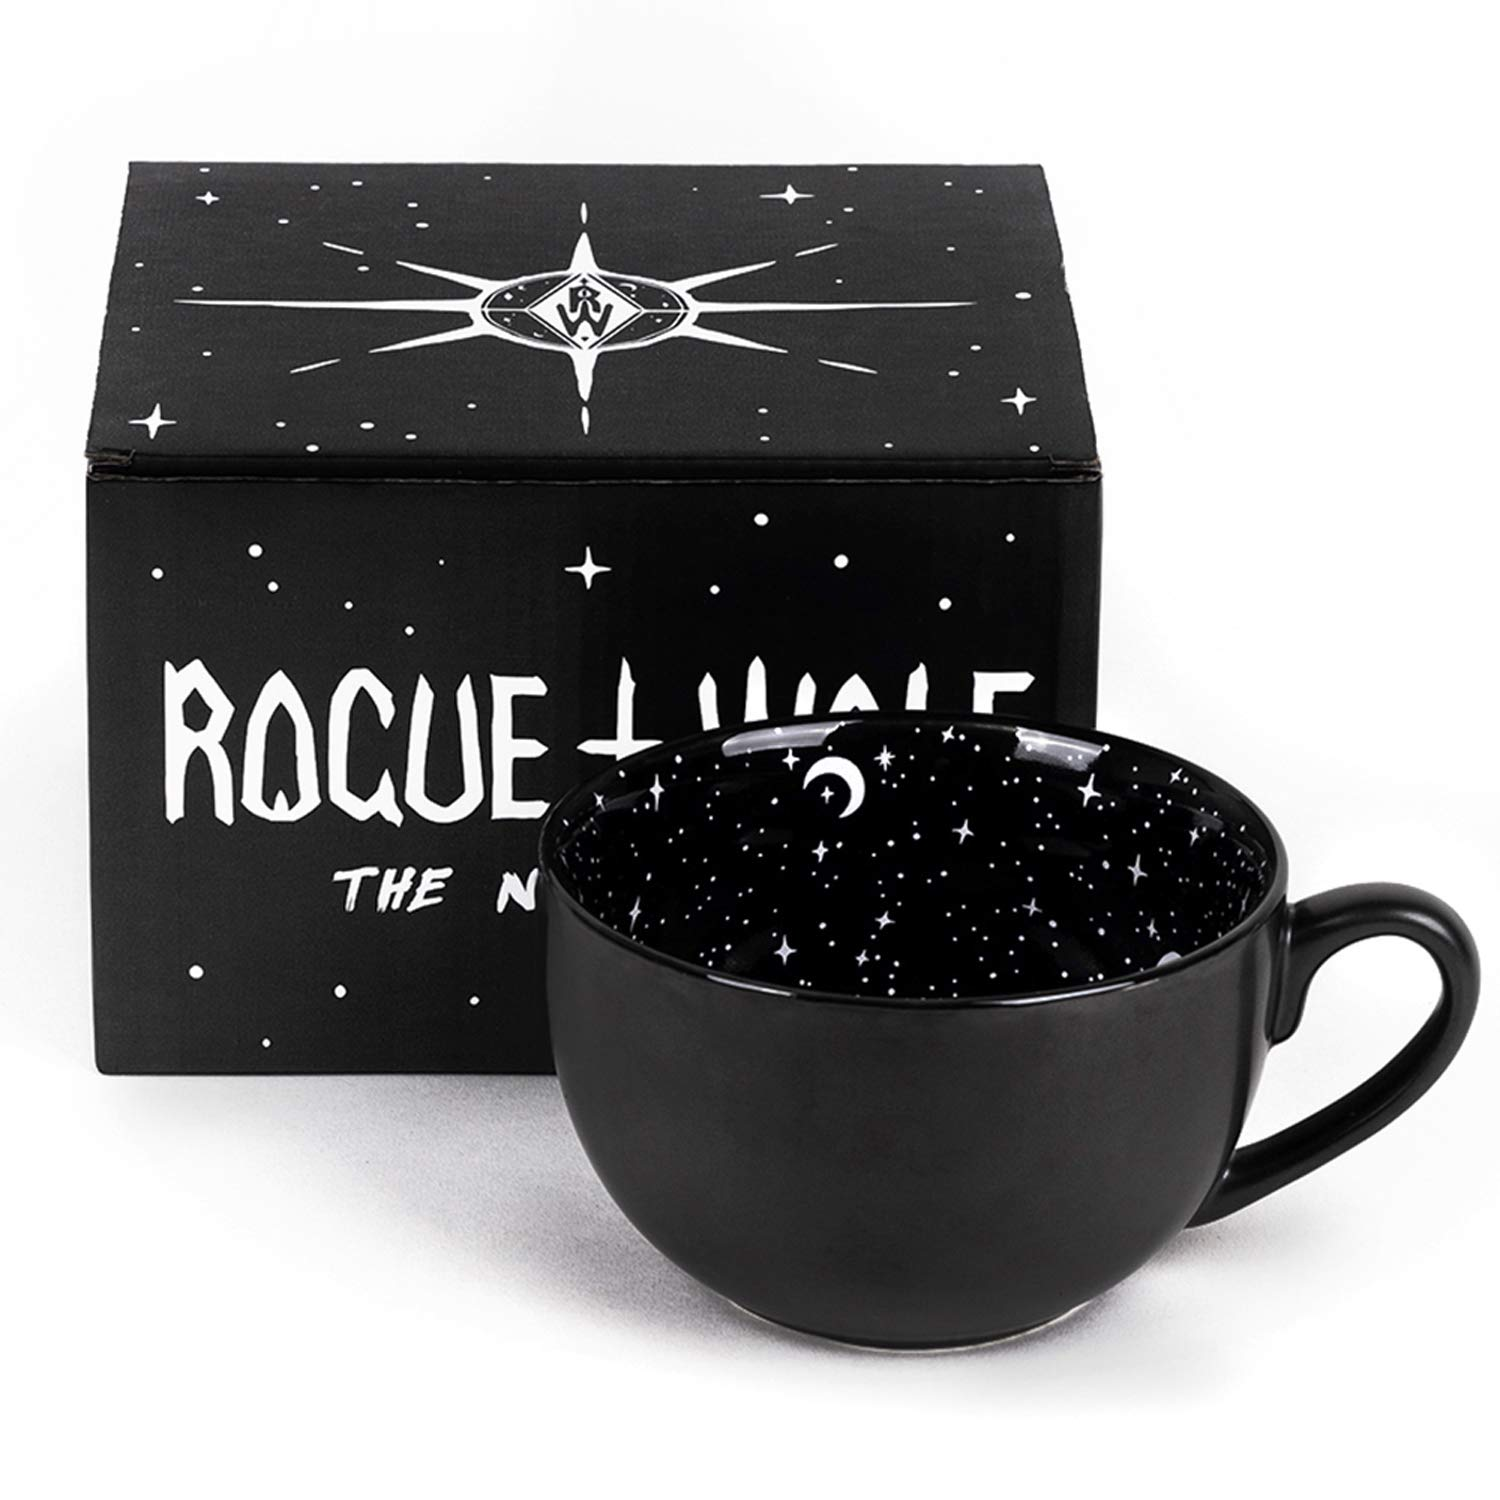 Midnight Coffee Large Mug in Gift Box By Rogue + Wolf Cute Mugs For Women Unique Witch Halloween Gifts Novelty Tea Cup Goth Decor - 17.6oz 500ml Porcelain by Rogue + Wolf (Image #9)